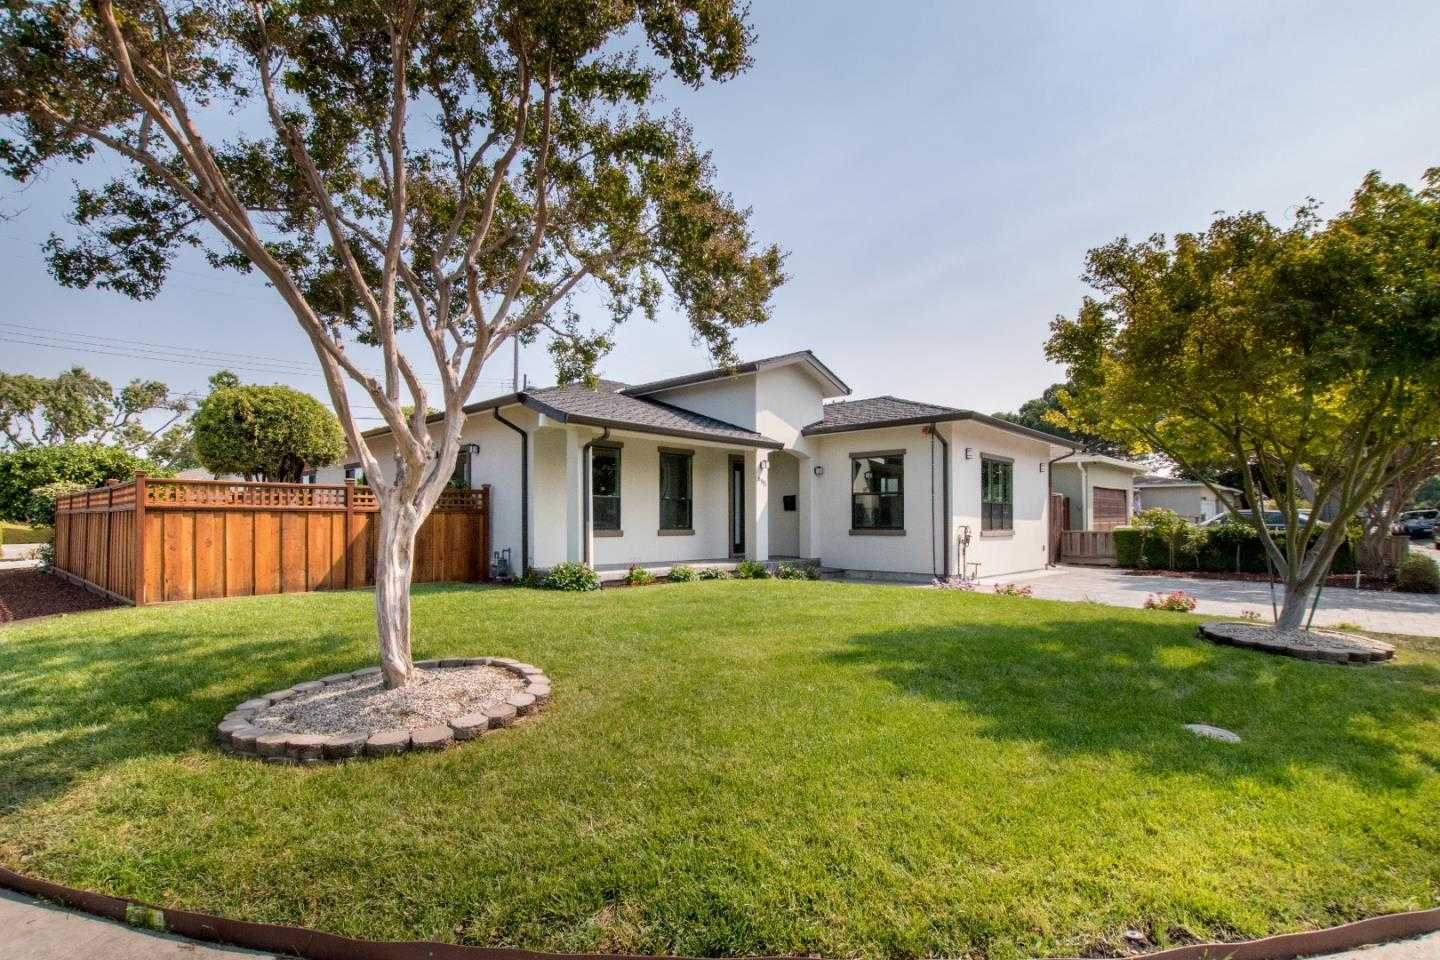 $1,949,000 - 4Br/3Ba -  for Sale in Santa Clara